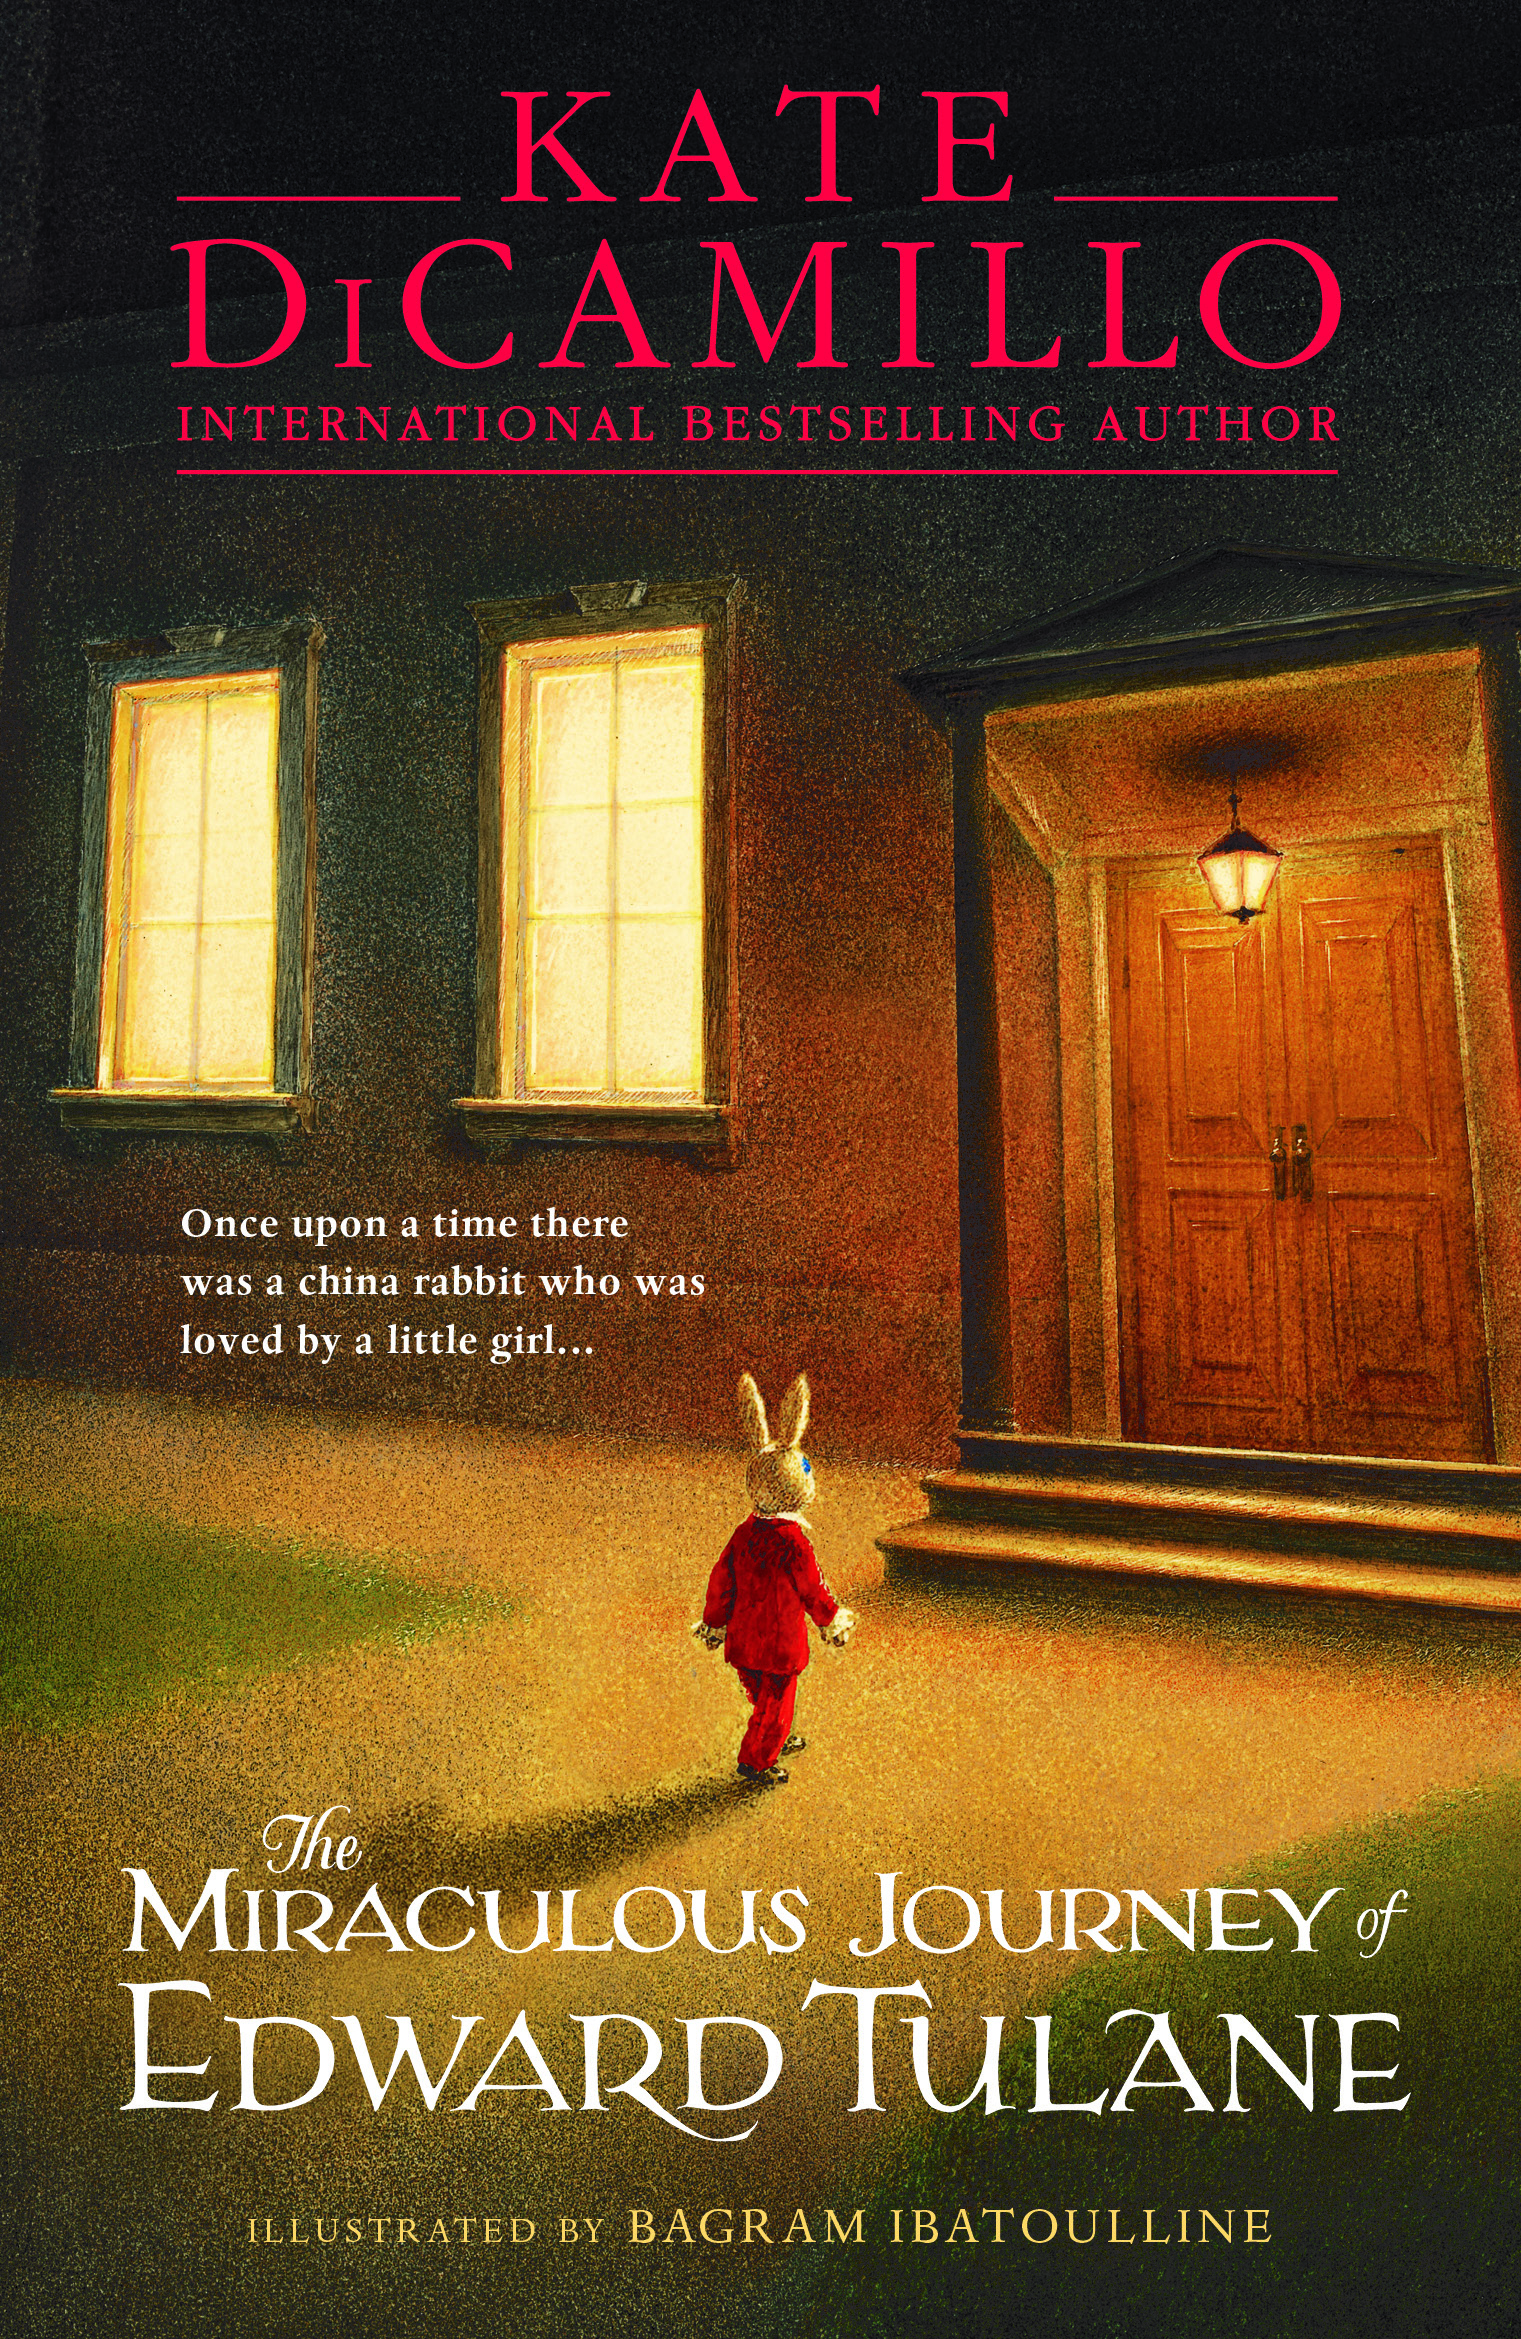 the miraculous journey of edward tulane book report The miraculous journey of edward tulane kate dicamillo's new classic bookpage review by alice cary if you're looking for a book about love for valentine's day, you'll be hard-pressed to find a better choice than the miraculous journey of edward tulane, which goes on sale, appropriately, on feb 14 this latest story.